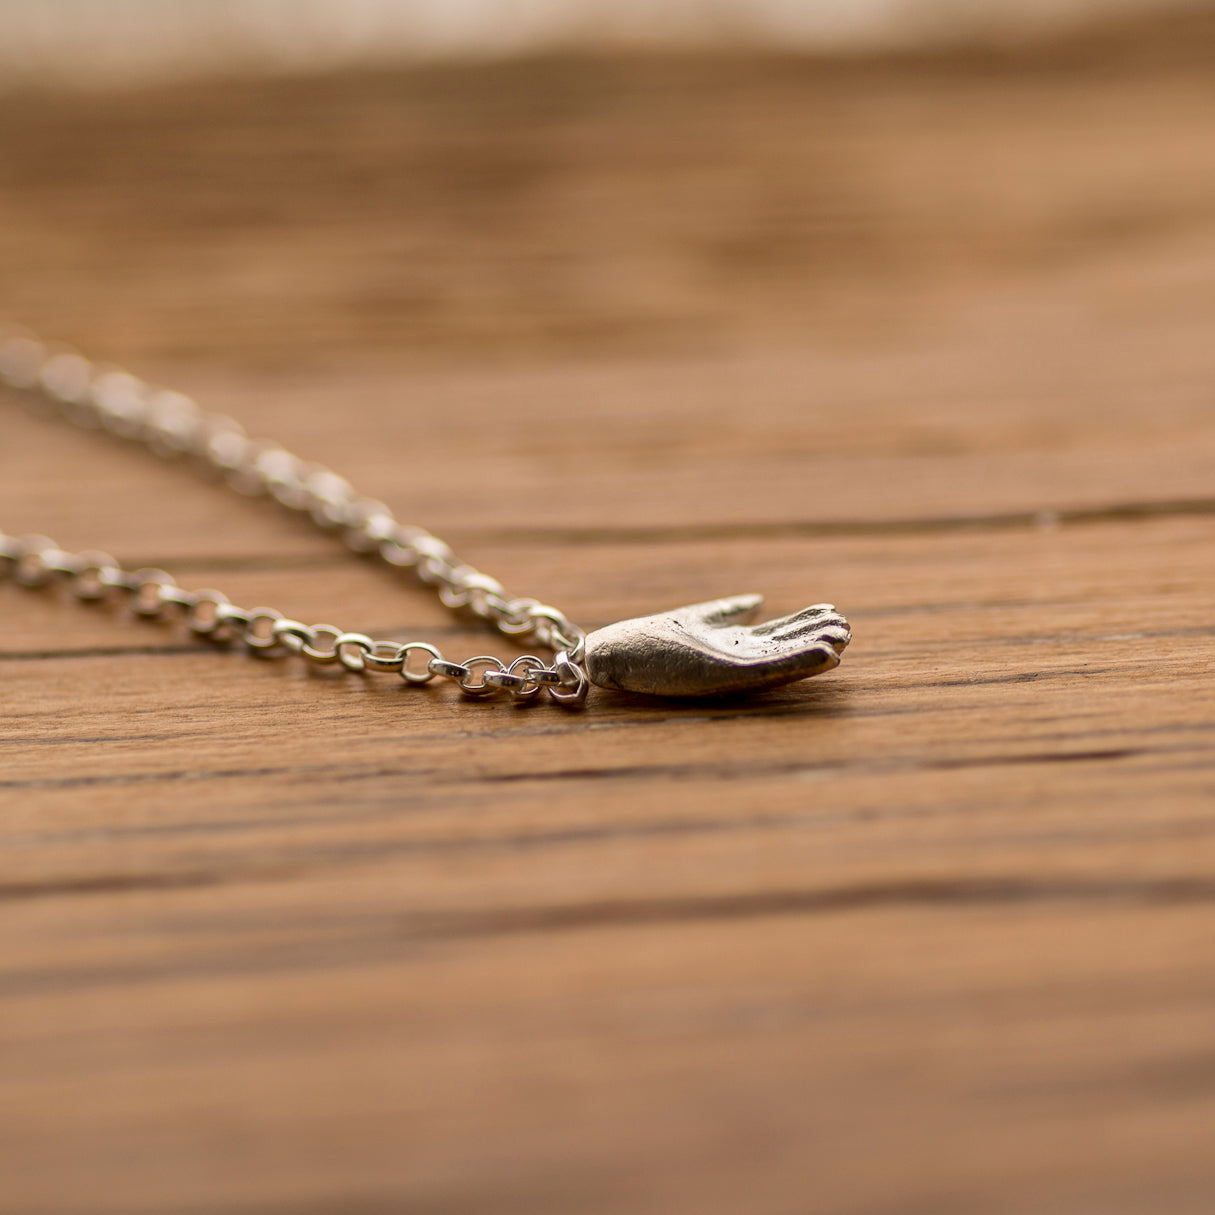 A tiny fine silver hand hanging from a sterling silver pendant, displayed on an oak board. The little hand measures only 11mm, and chains are available in various lengths.